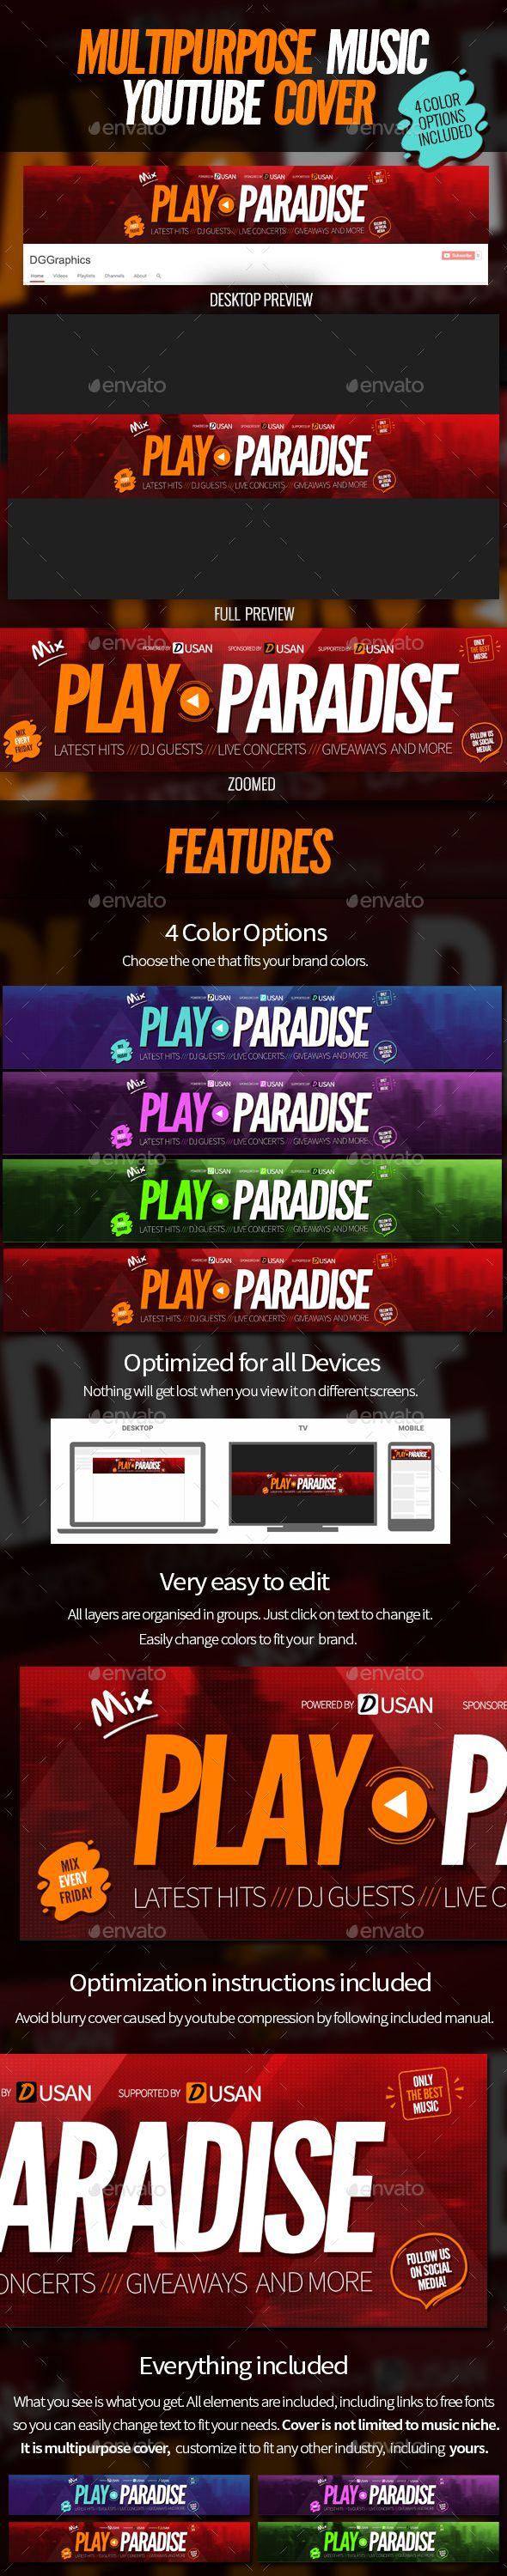 Multipurpose Music Youtube Cover Template Psd Download Https